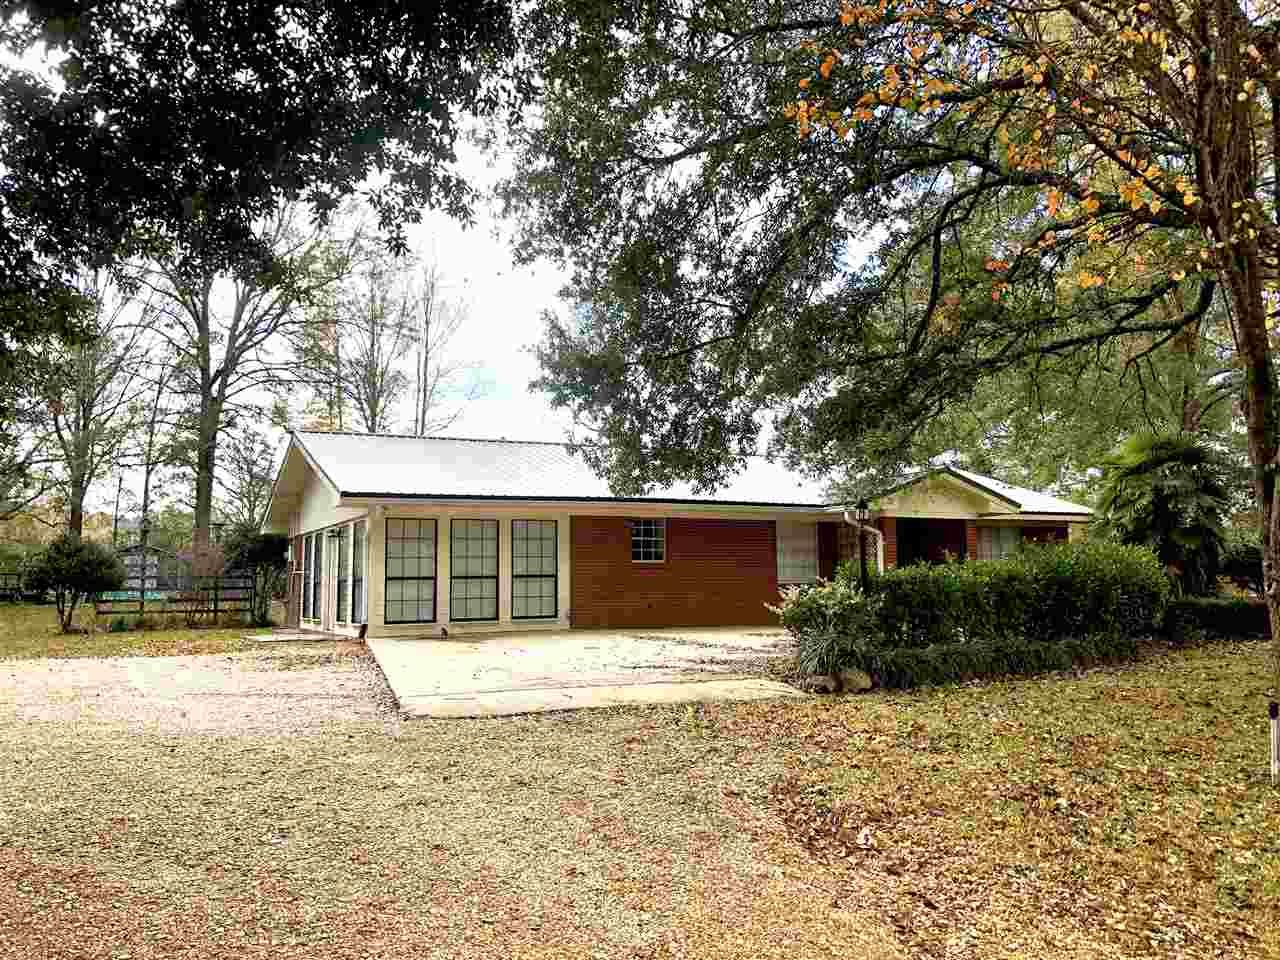 251 E SIMPSON HWY 28, Magee, MS 39111 - MLS#: 336756